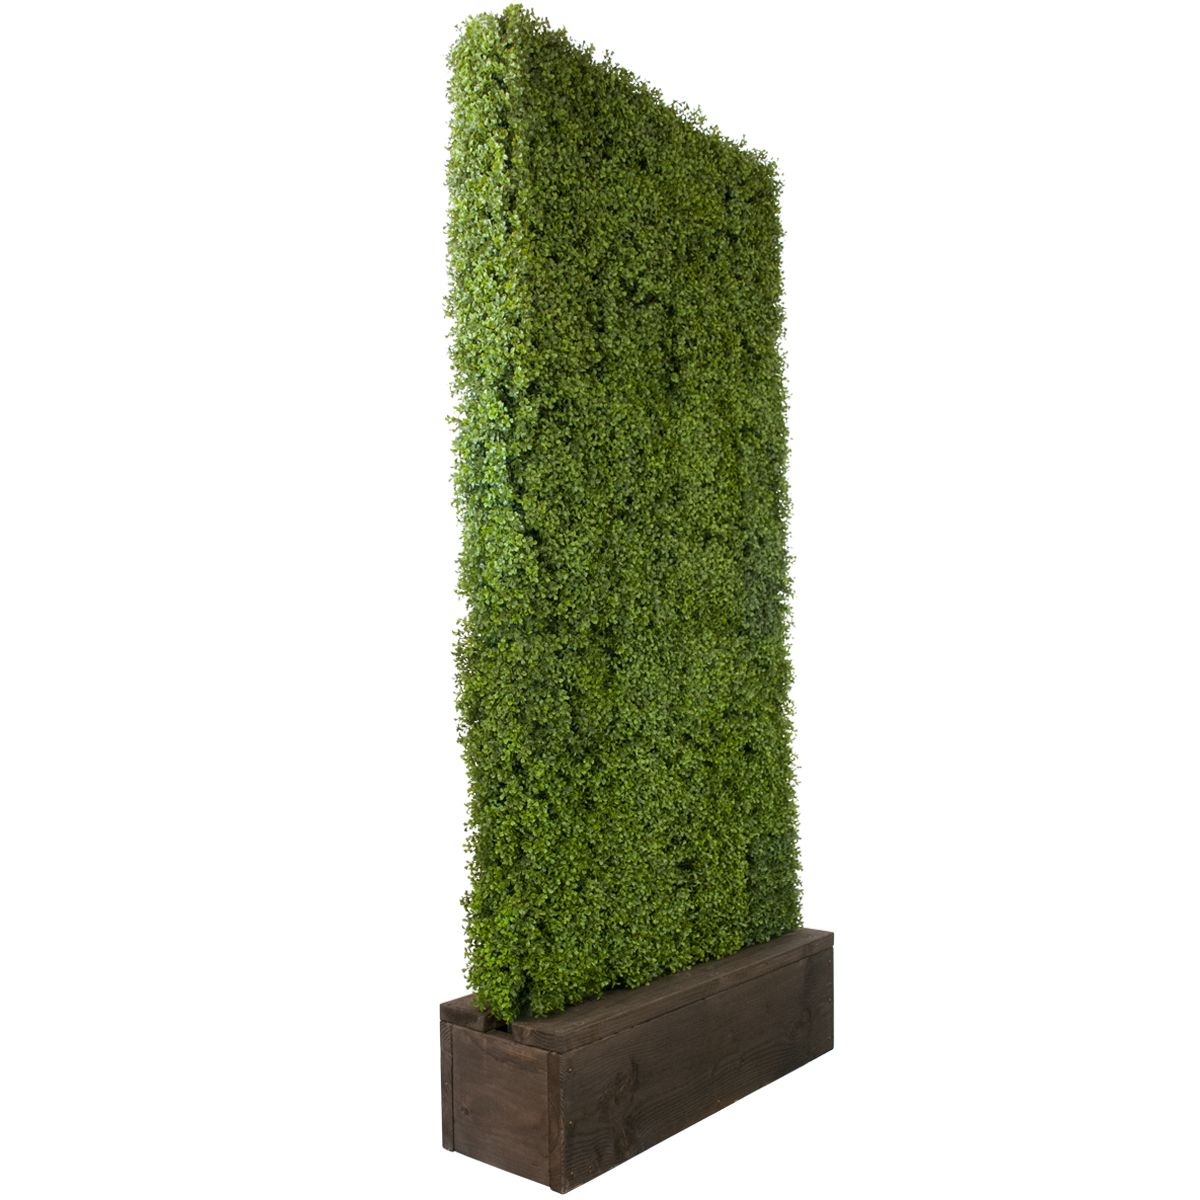 Frosted Glass Pocket Doors For Your House besides B87ea3bfdf9573f7 furthermore Artificial Boxwood Hedge besides Folding Doors Room Dividers moreover Adp3 Kitchen I Love. on office depot dividers